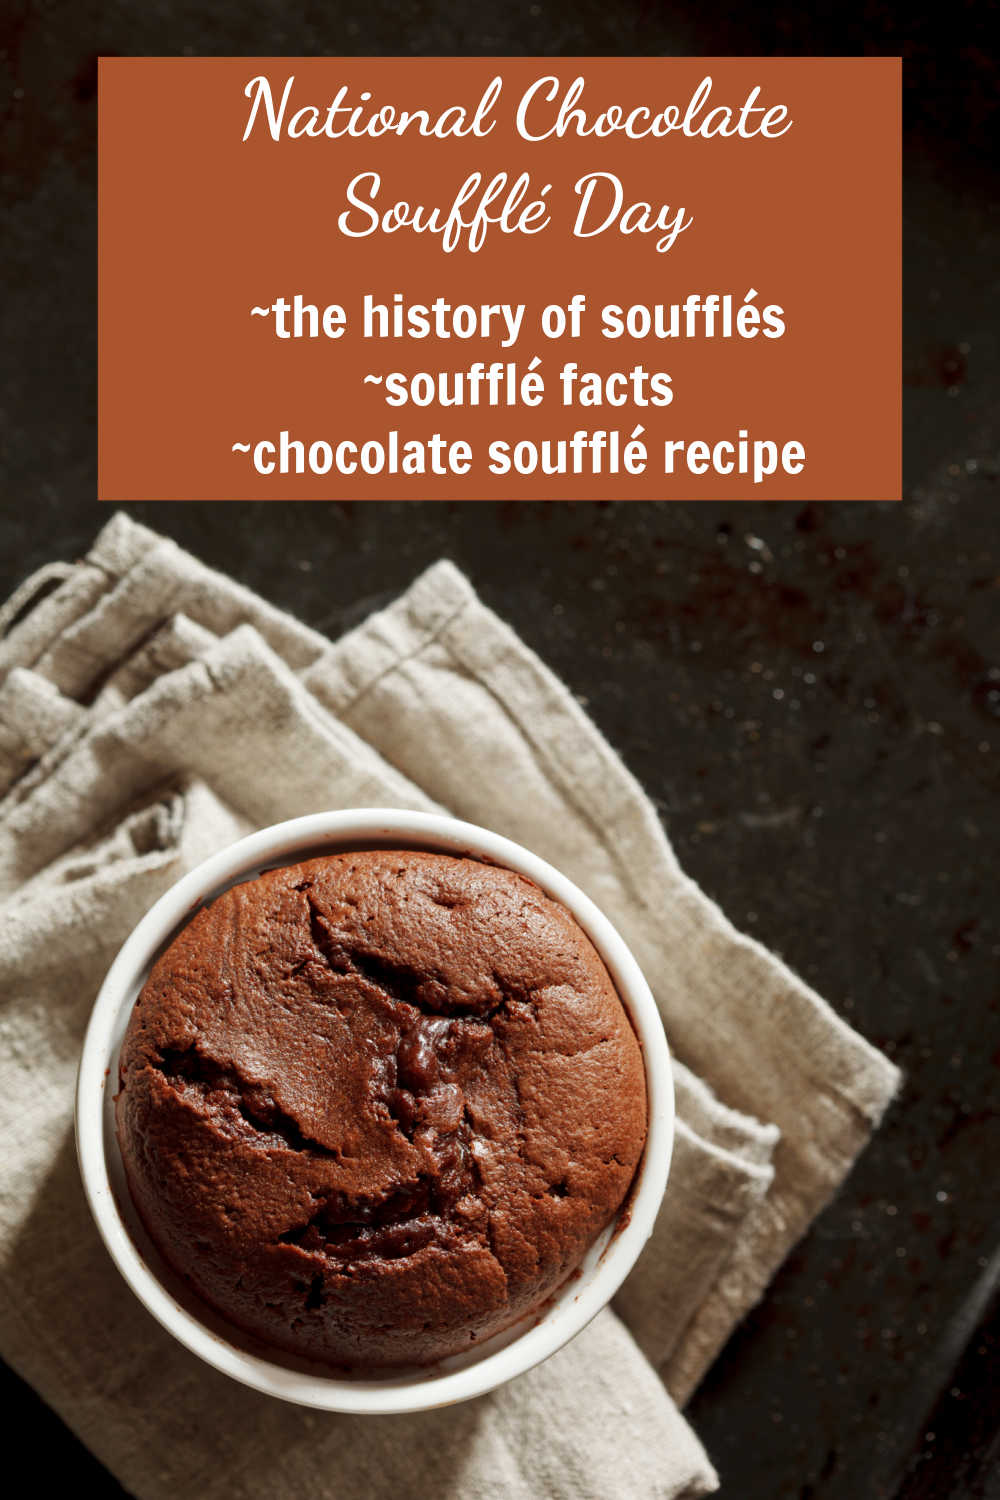 Chocolate soufflé on a towel with words reading National Chocolate Soufflé Day - history of soufflé, soufflé facts and soufflé recipe.